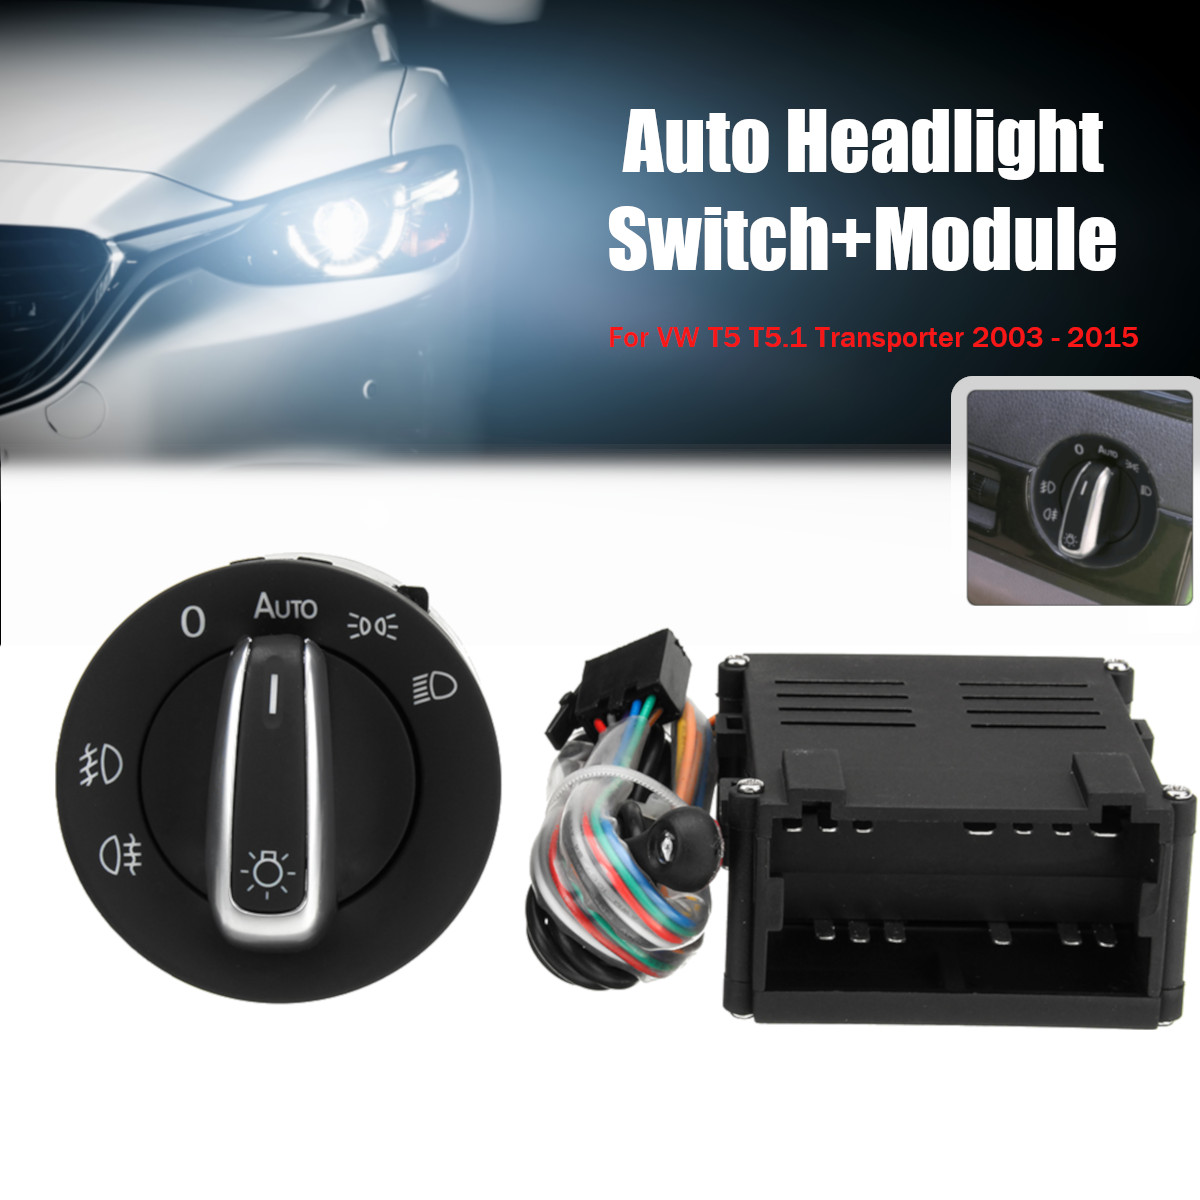 Car Auto Headlight Sensor HeadLamp Switch Control Module for VW T5 T5 1 Transporter 2003 2015